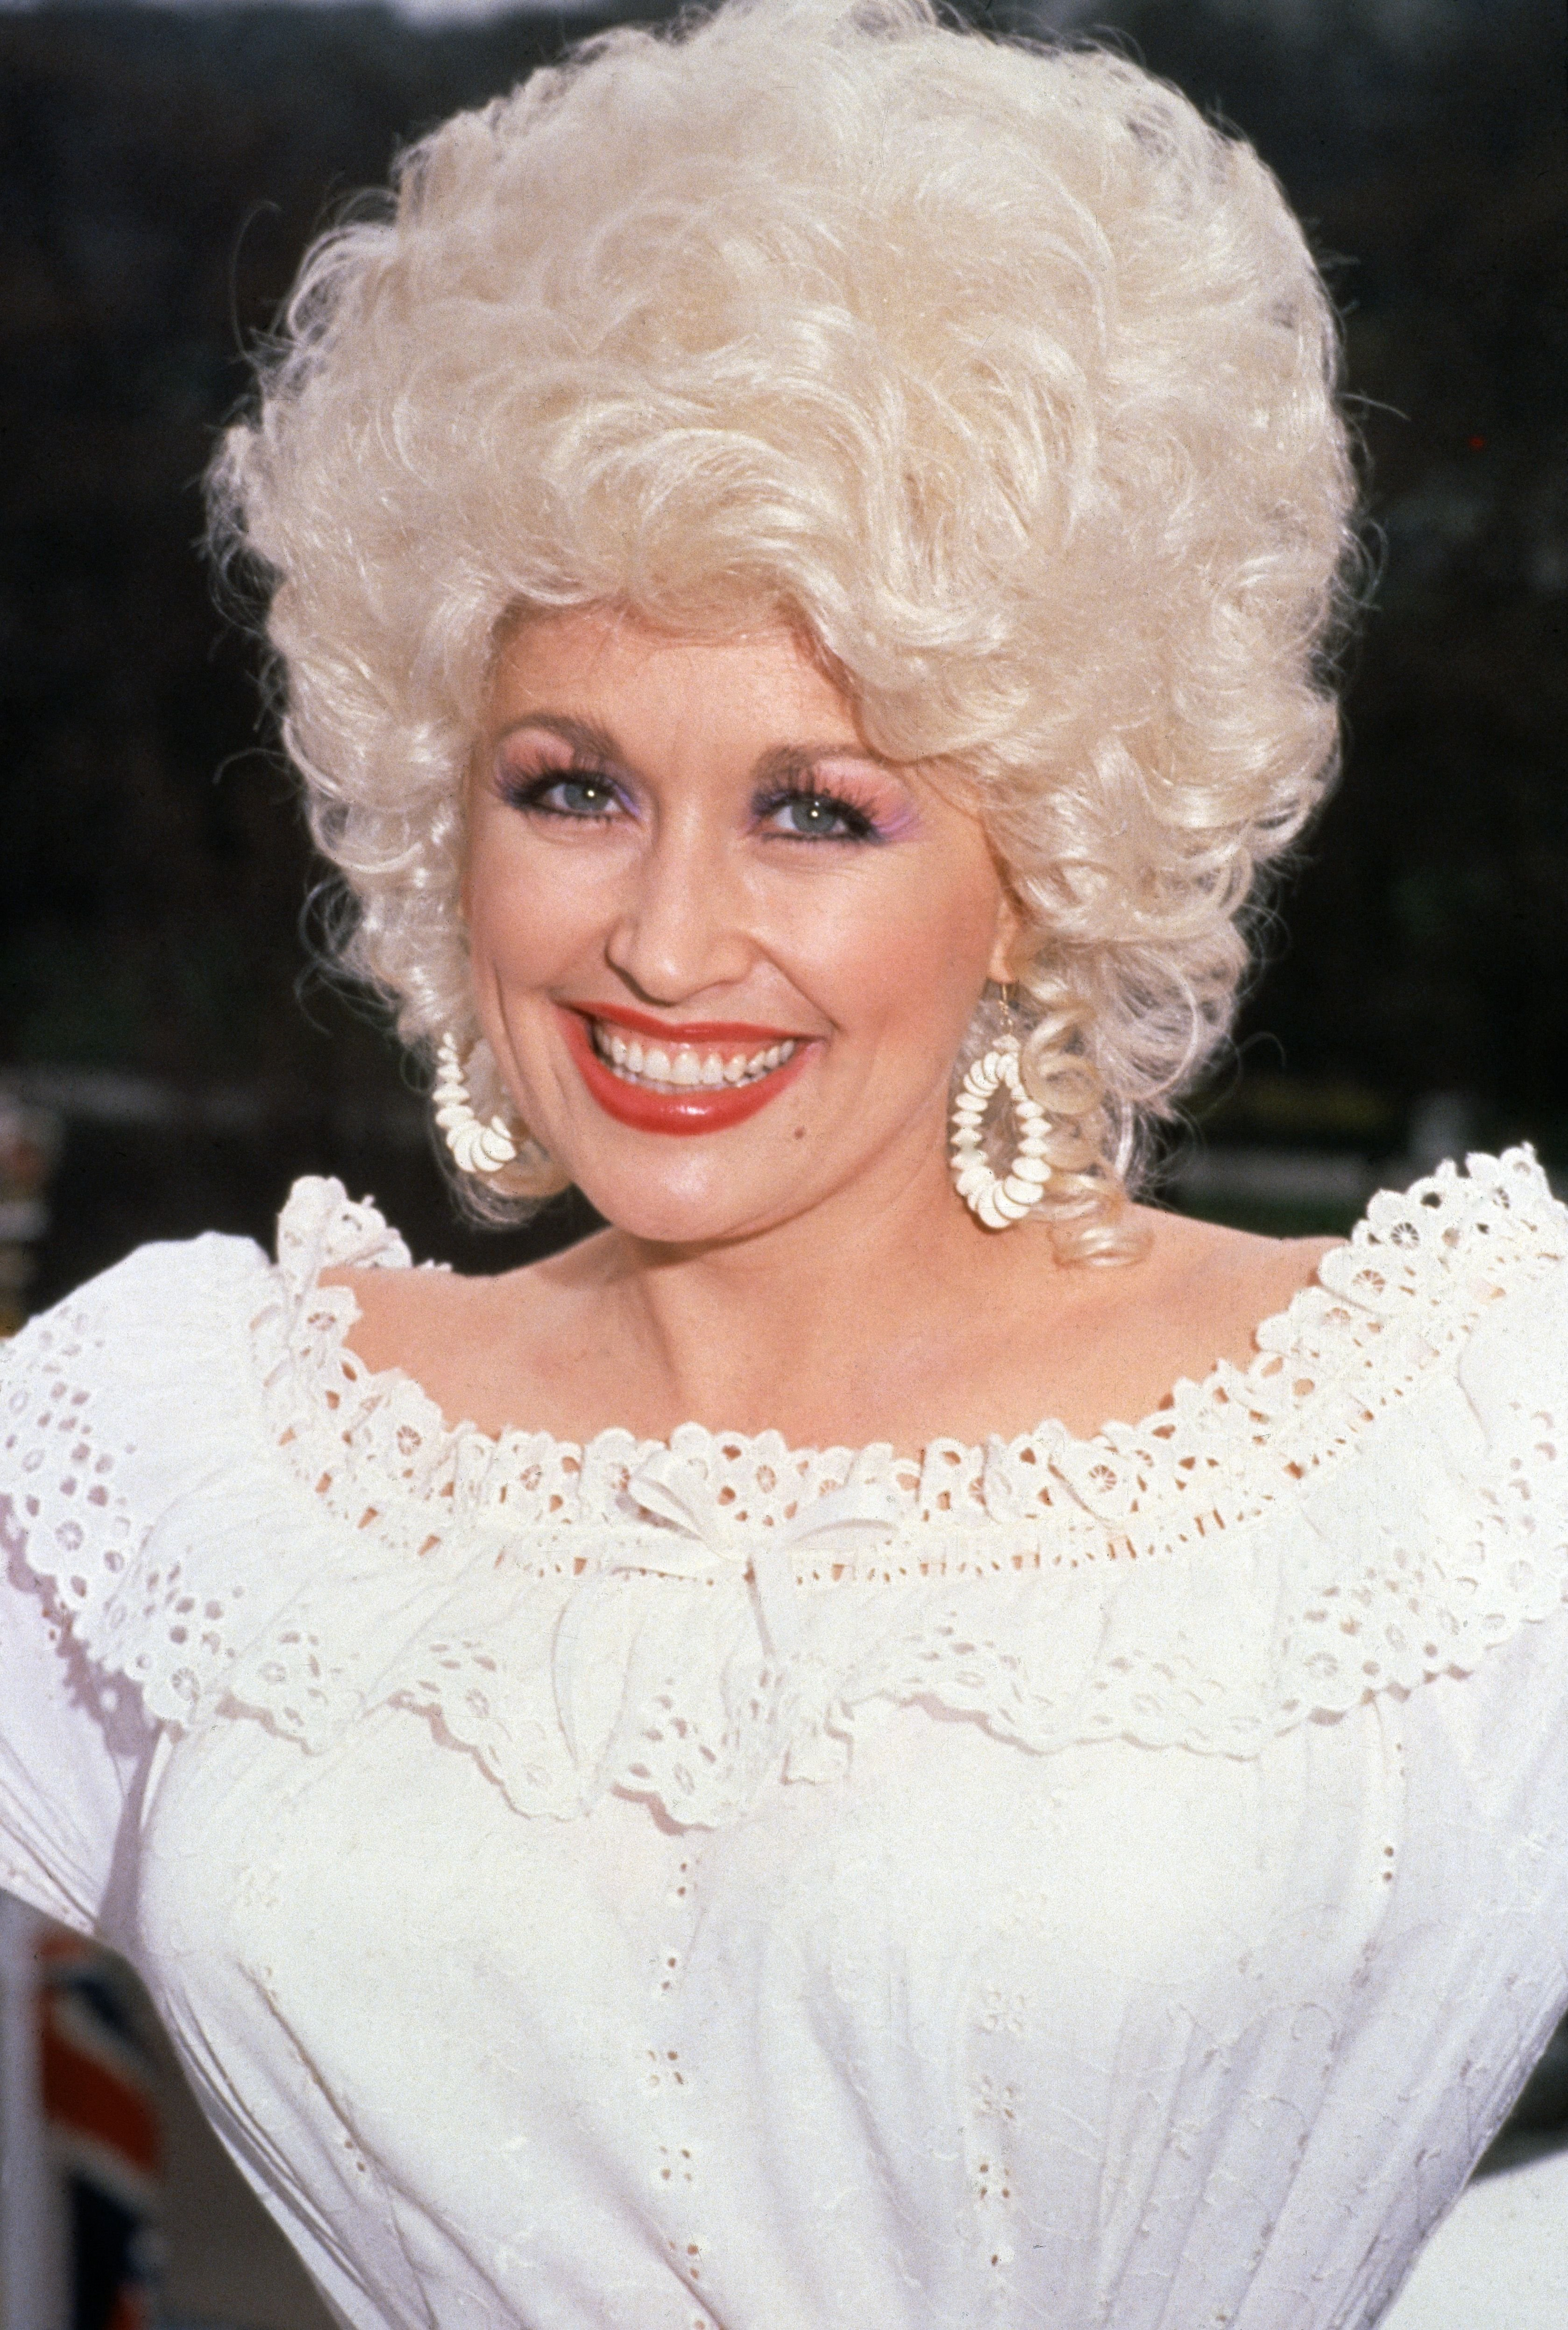 Dolly Parton in London, 1983. | Source: Getty Images